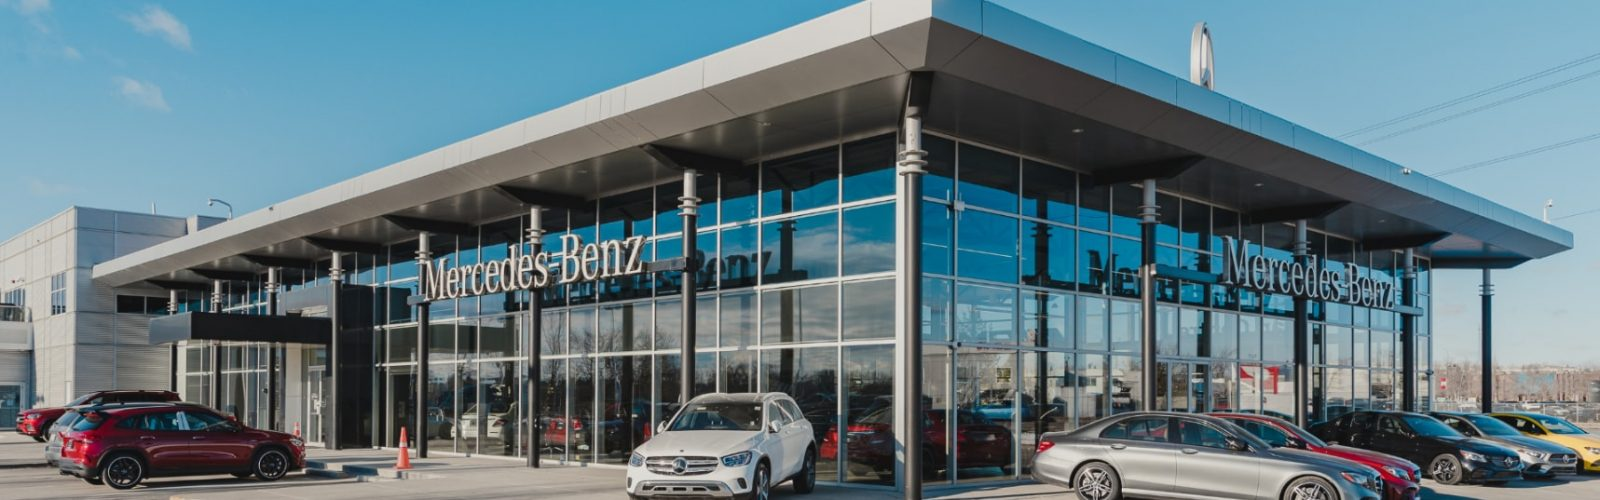 Exterior of AMG section in showroom at Lonestar Mercedes-Benz business.